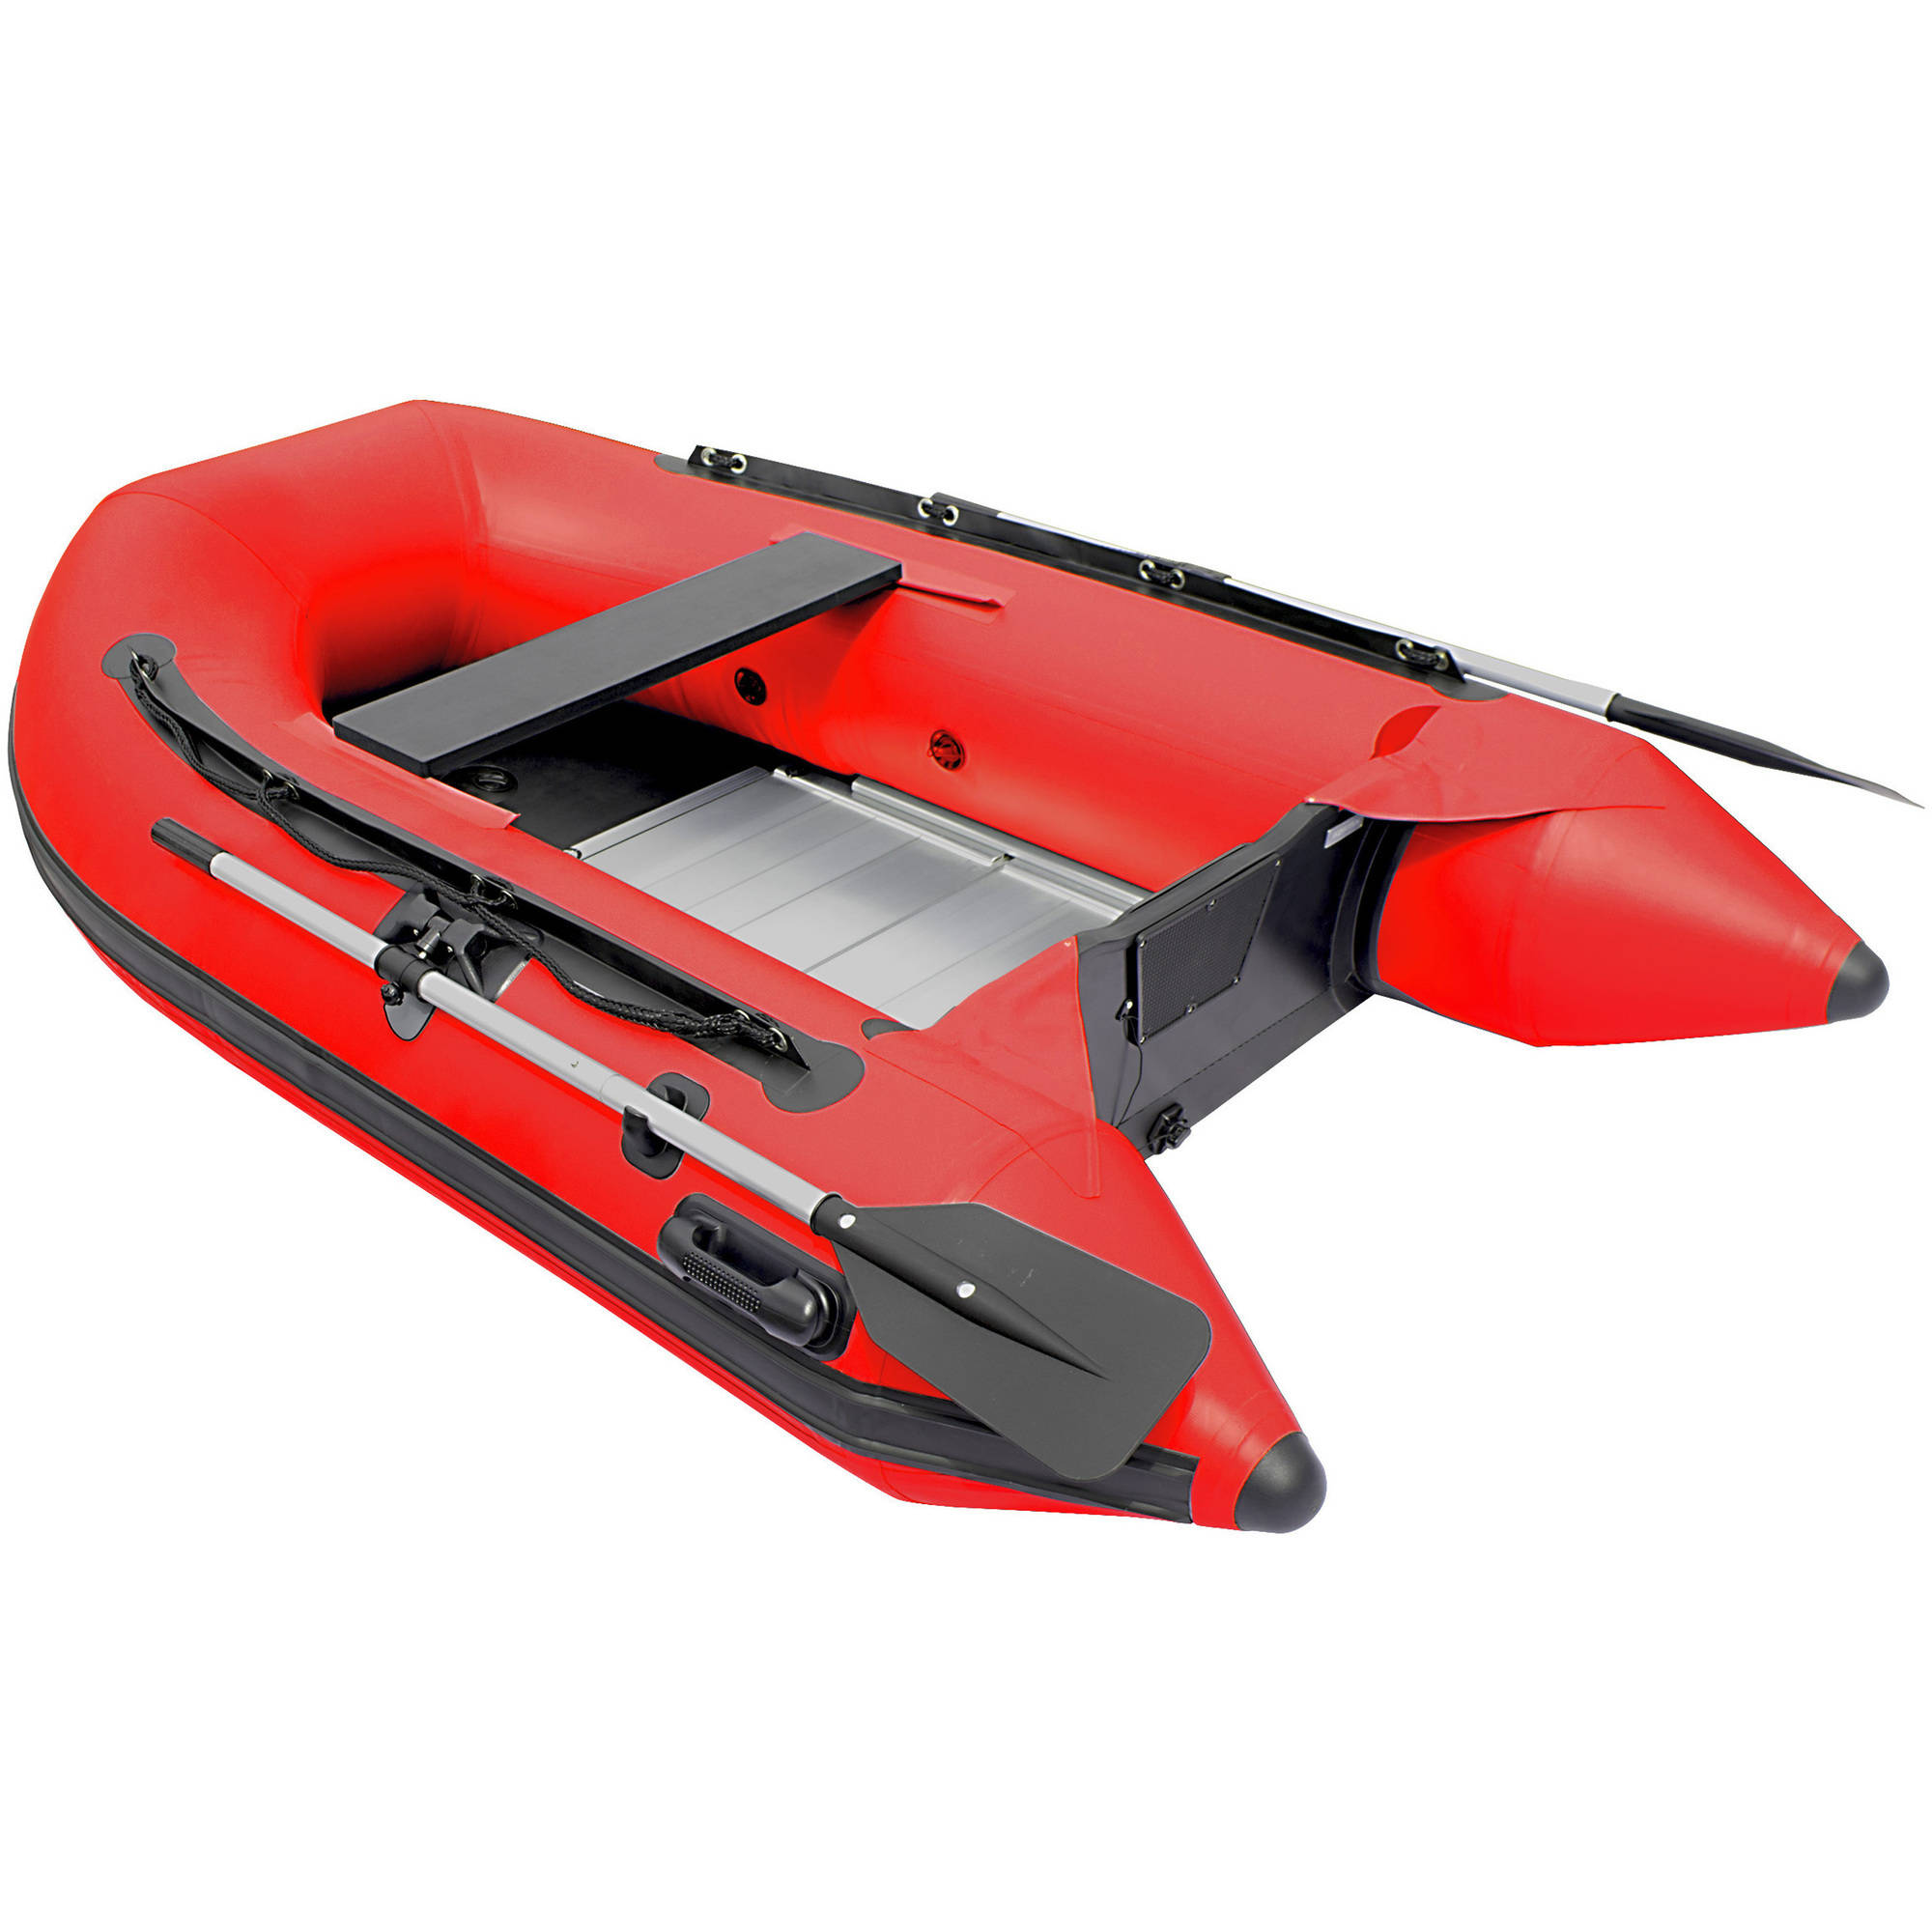 ALEKO Inflatable Boat - 3 Person - Aluminum Floor- 8.4 Feet - Red